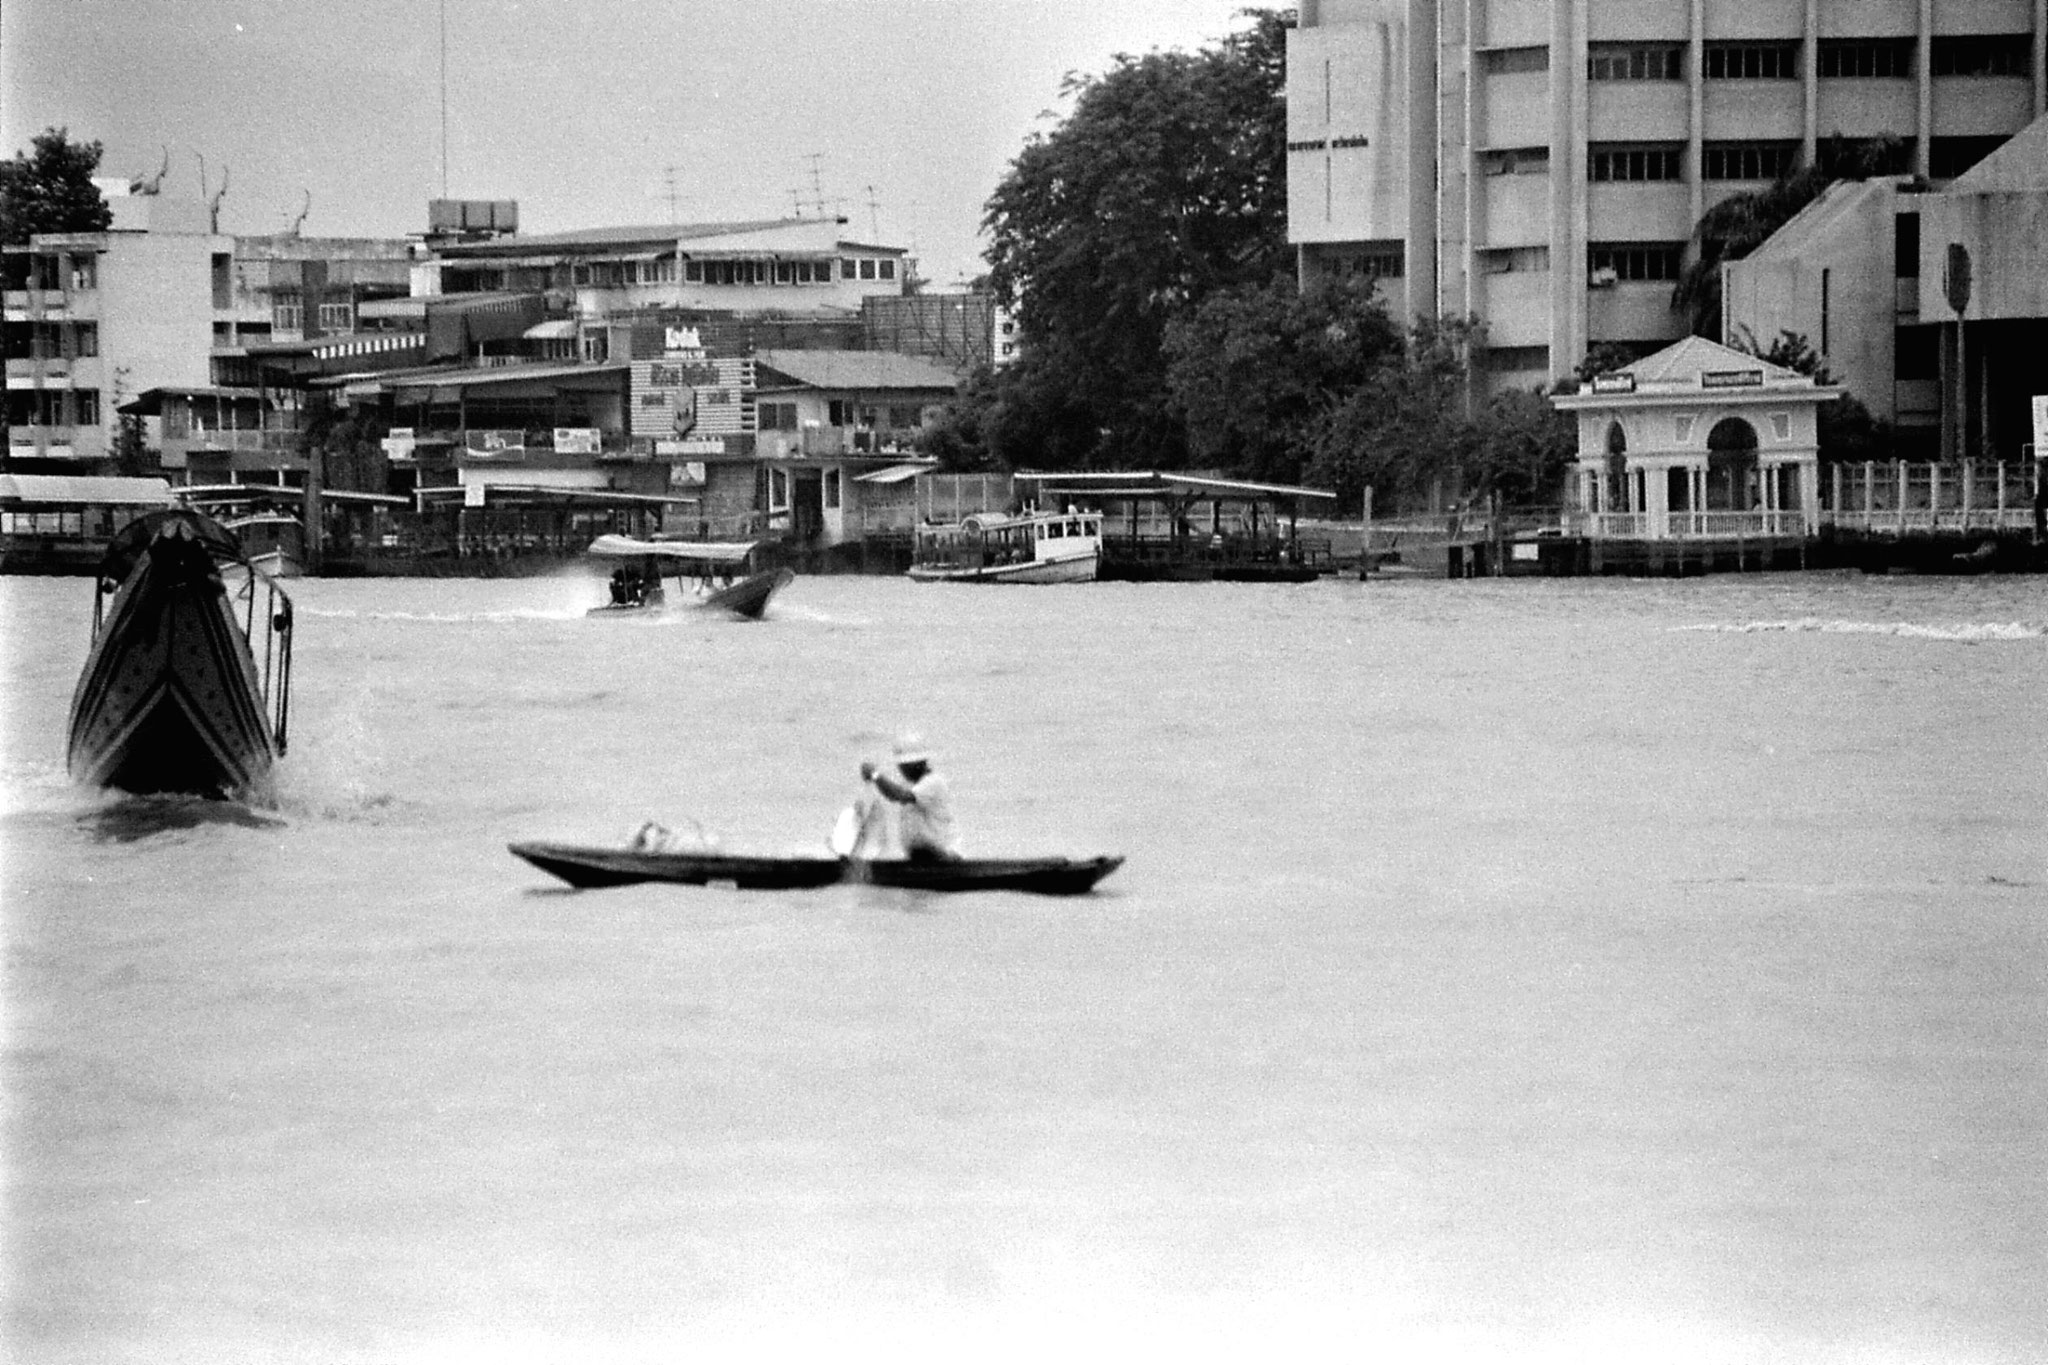 17/6/1990: 25: Bangkok, on the river